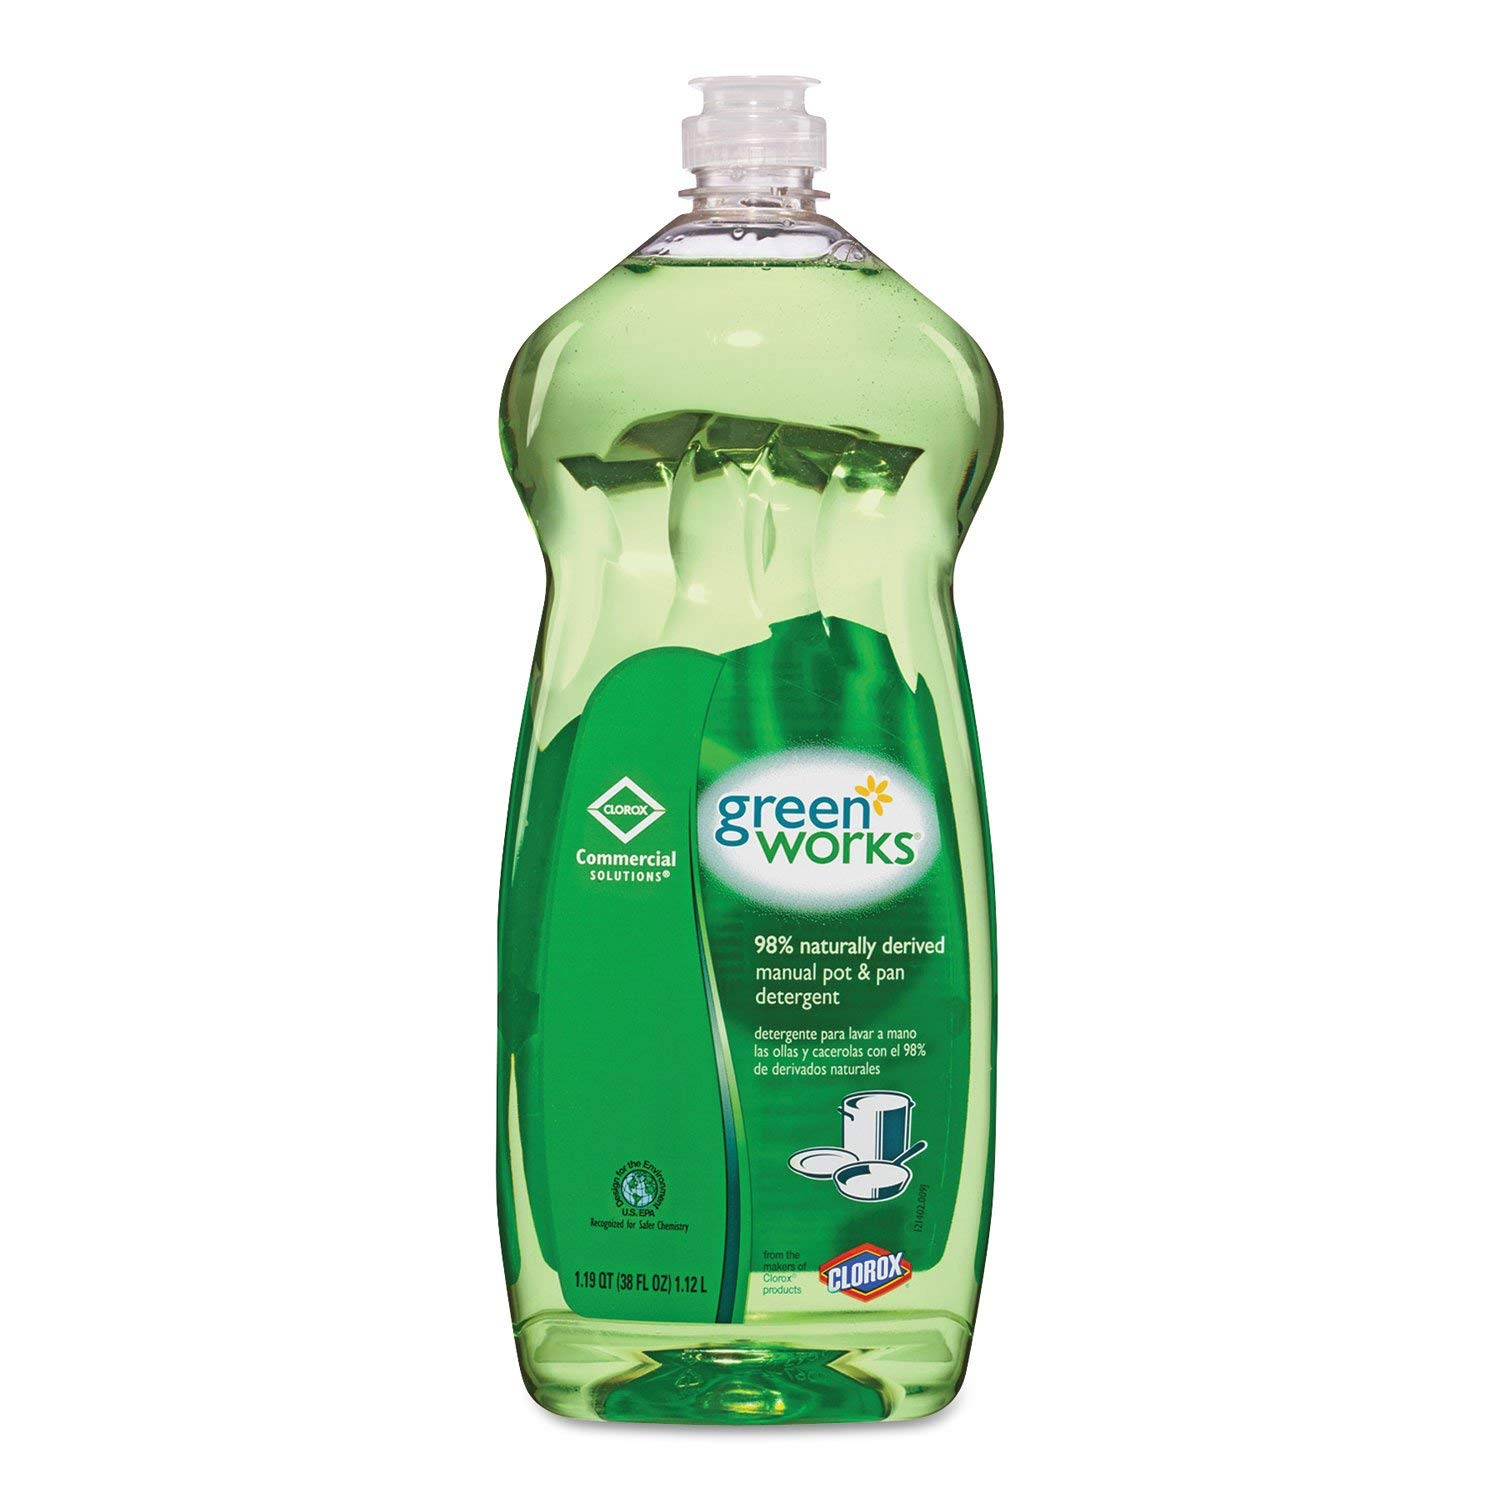 Green Works CLO 30381 38 oz Natural Common Solutions Pot And Pan Dishwashing Liquid Bottle